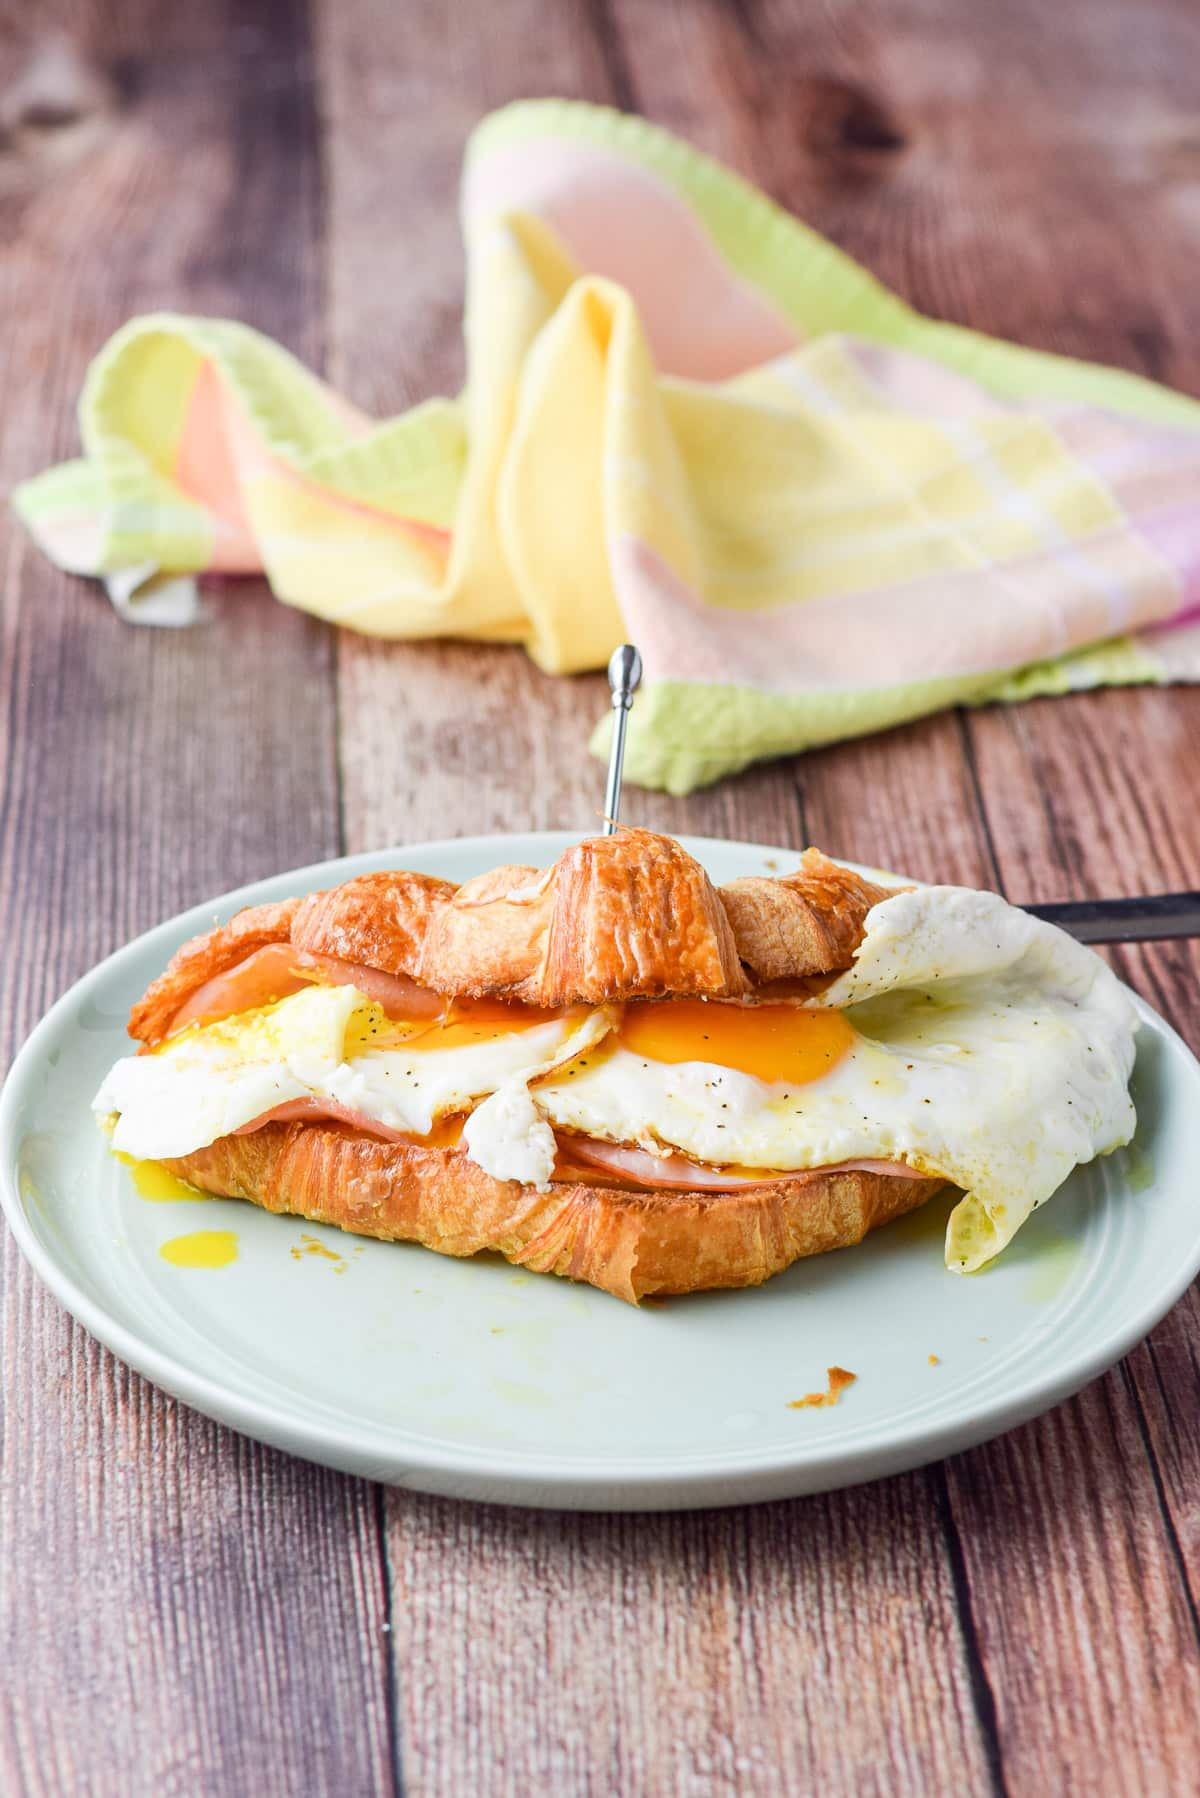 Eggs on a croissant with ham and cheese. There is a pick holding the croissant closed